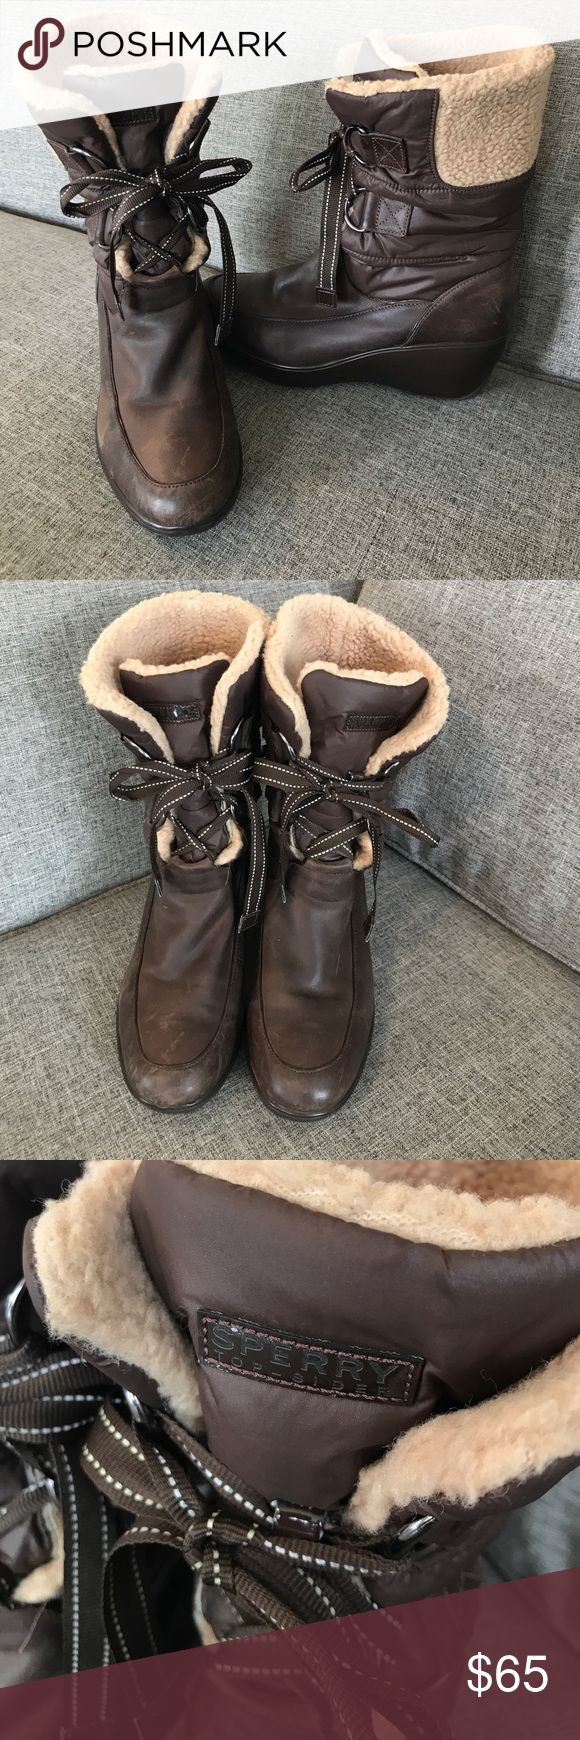 Sperry - Brown Winter Boots. Sperry - Brown Winter Boots. Dark brown boots with light brown faux fur lining, brown lace front boots, wedge type heel. Sperry Shoes Winter & Rain Boots